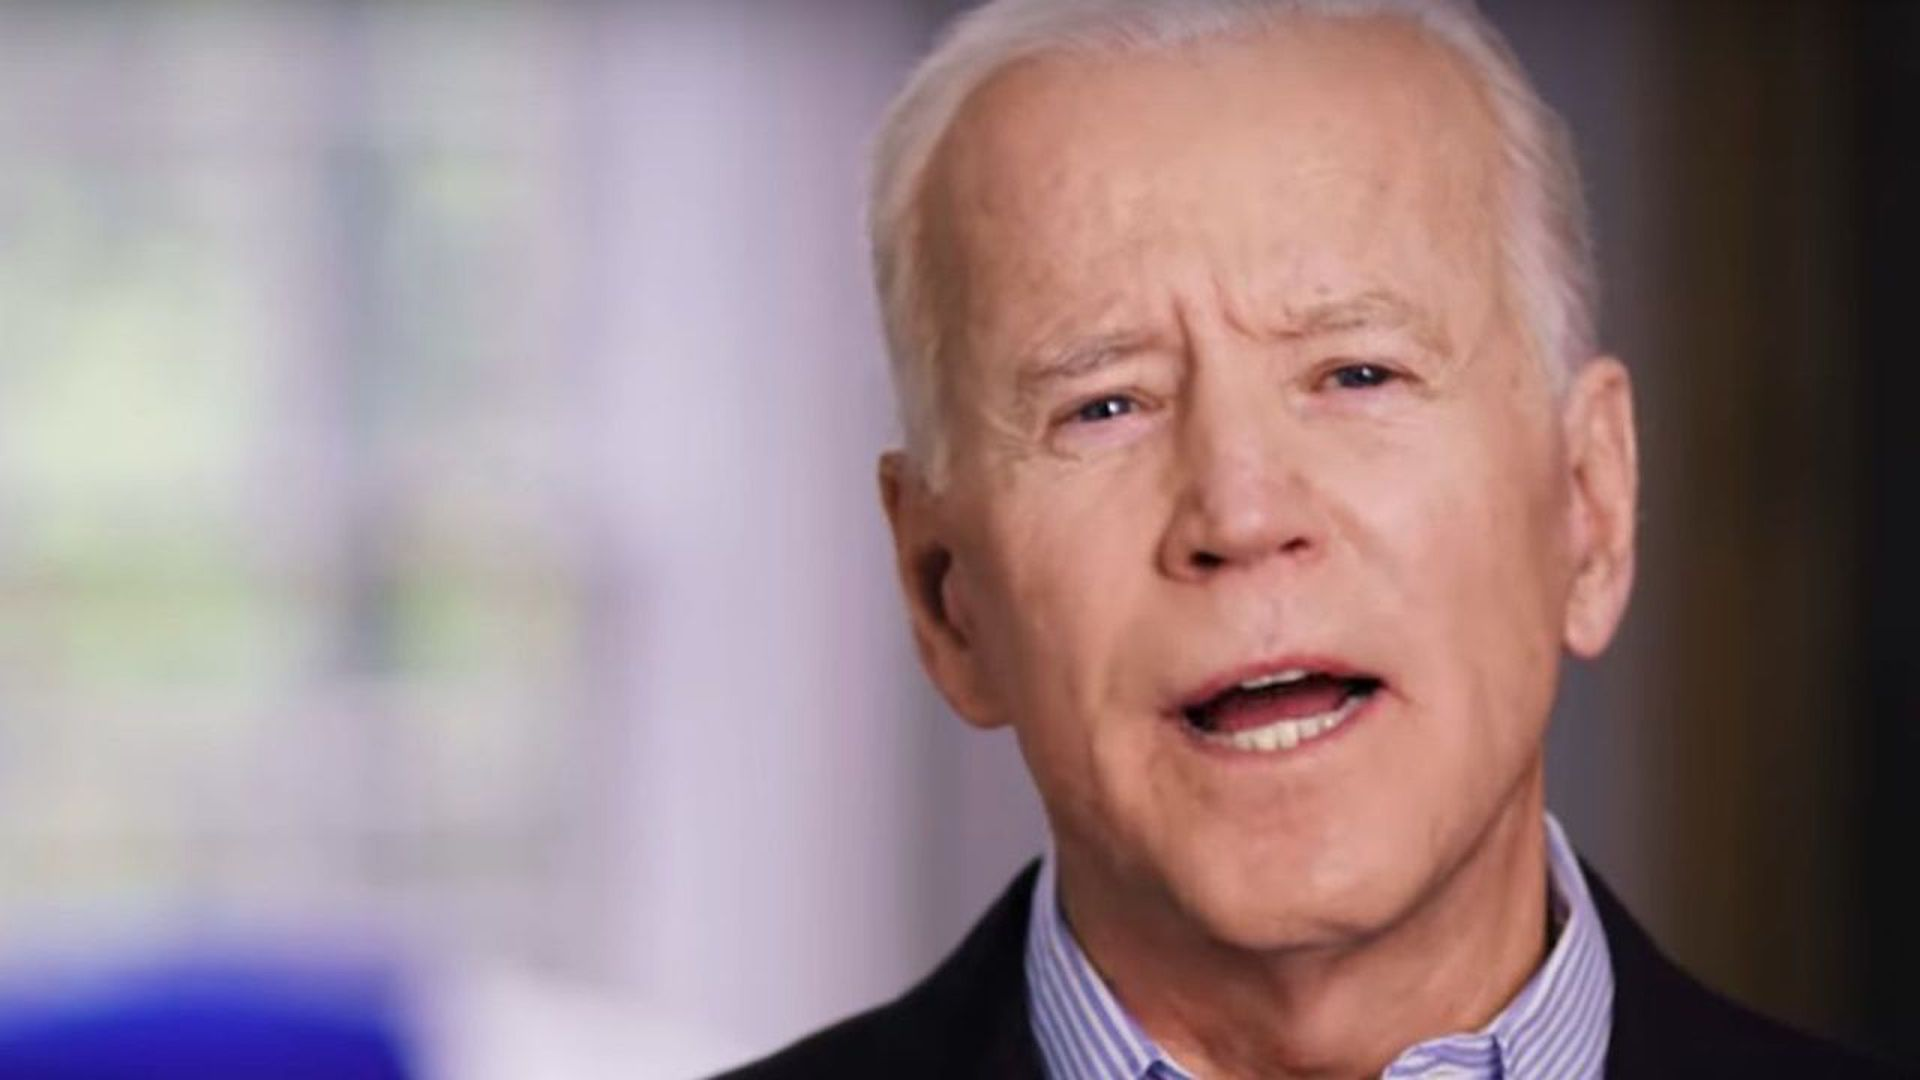 A cheat sheet to the launch day of Joe Biden's 2020 presidential campaign